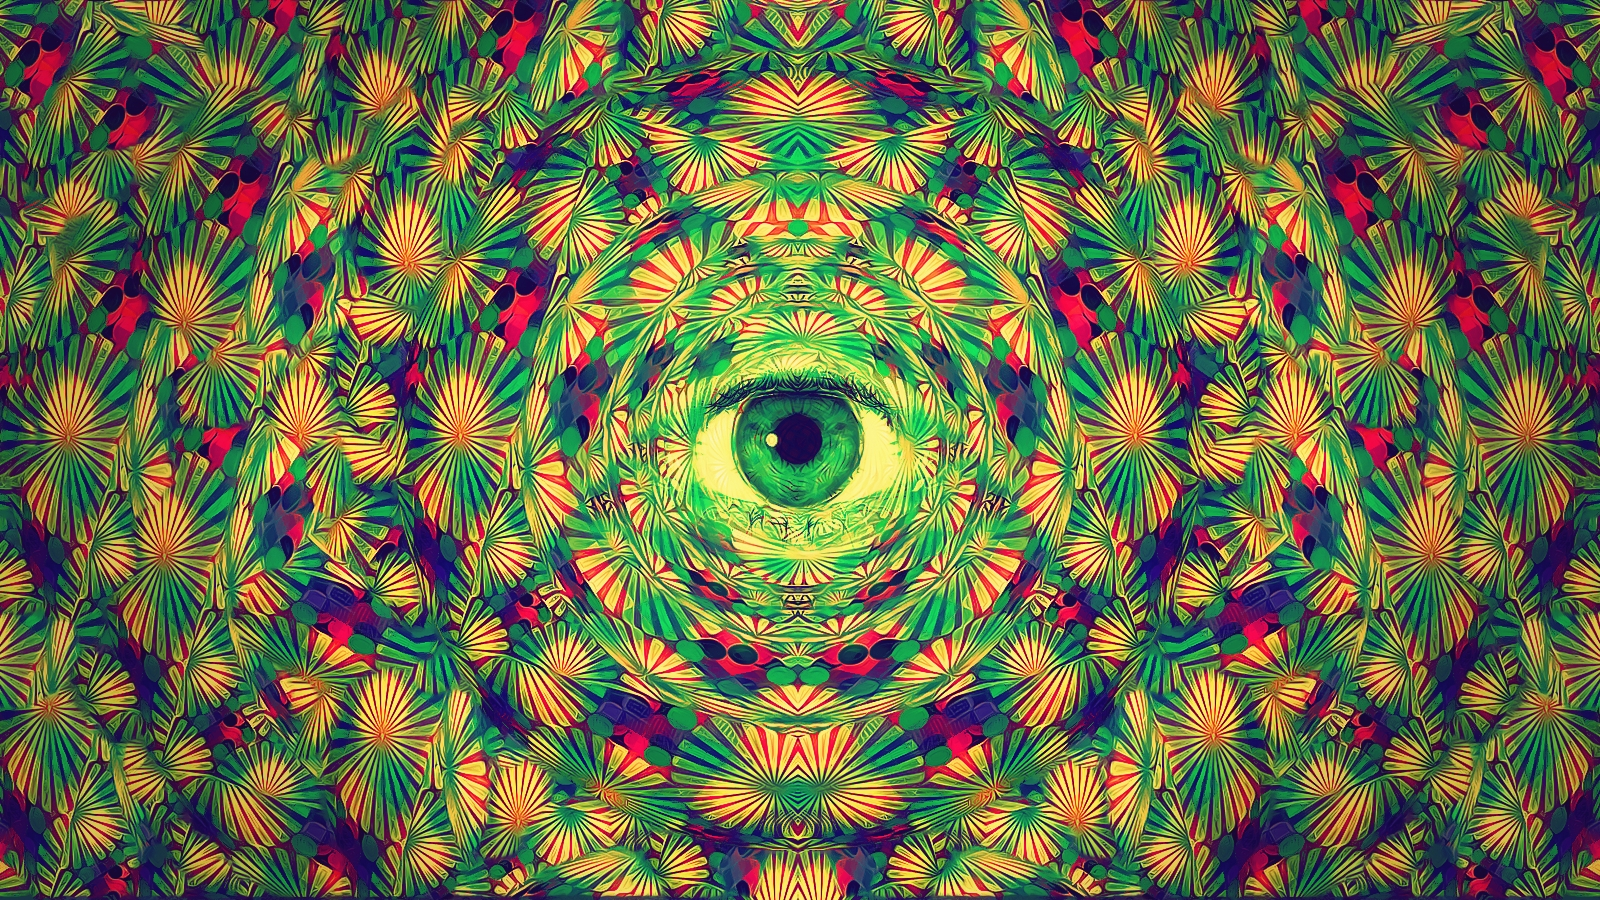 10 top hd 1080p trippy wallpaper full hd 1920×1080 for pc background